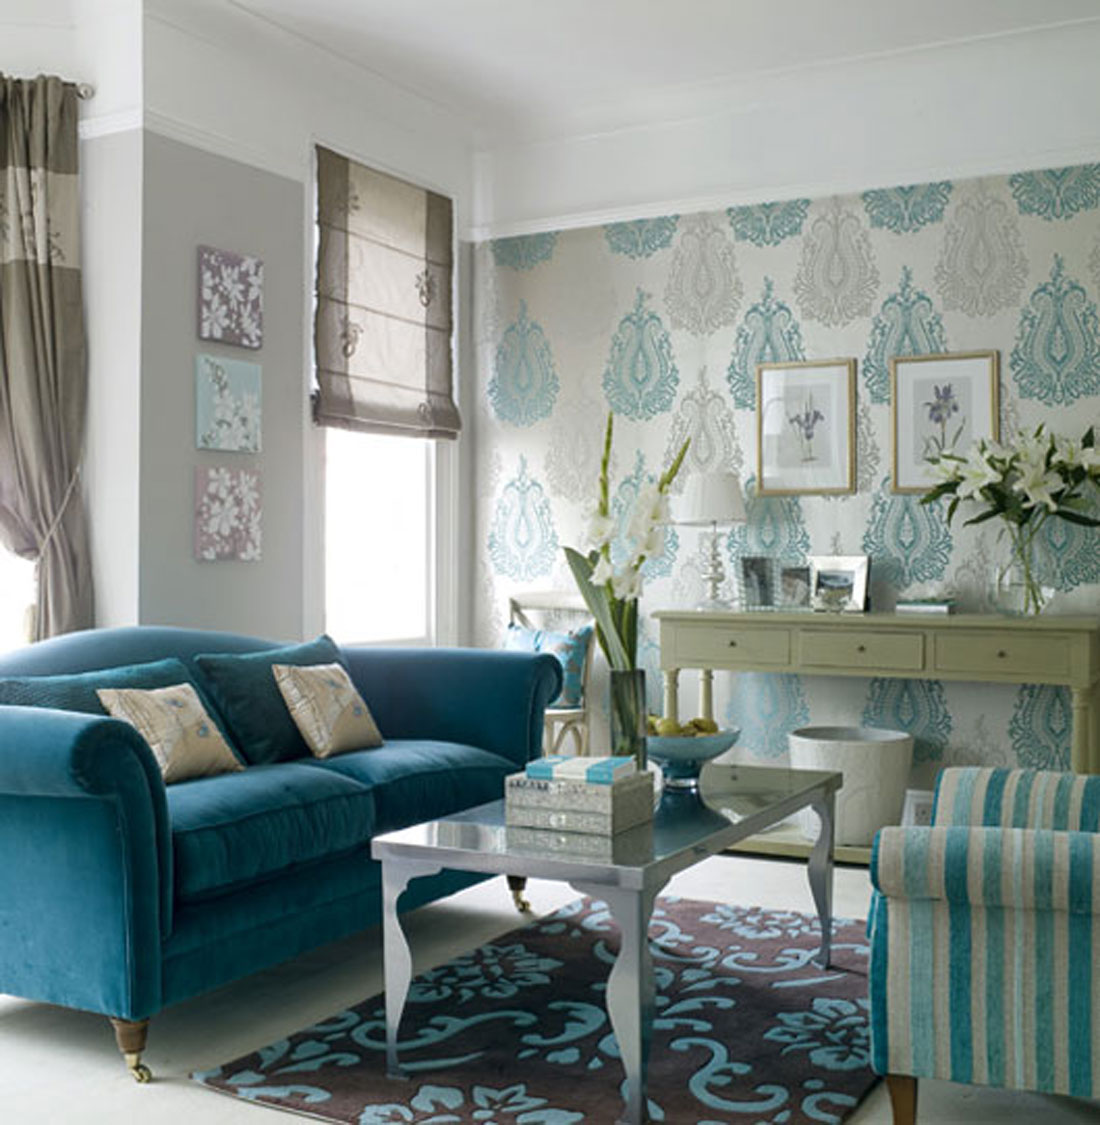 Interior Design Living Rooms Ideas: The Texture Of Teal And Turquoise